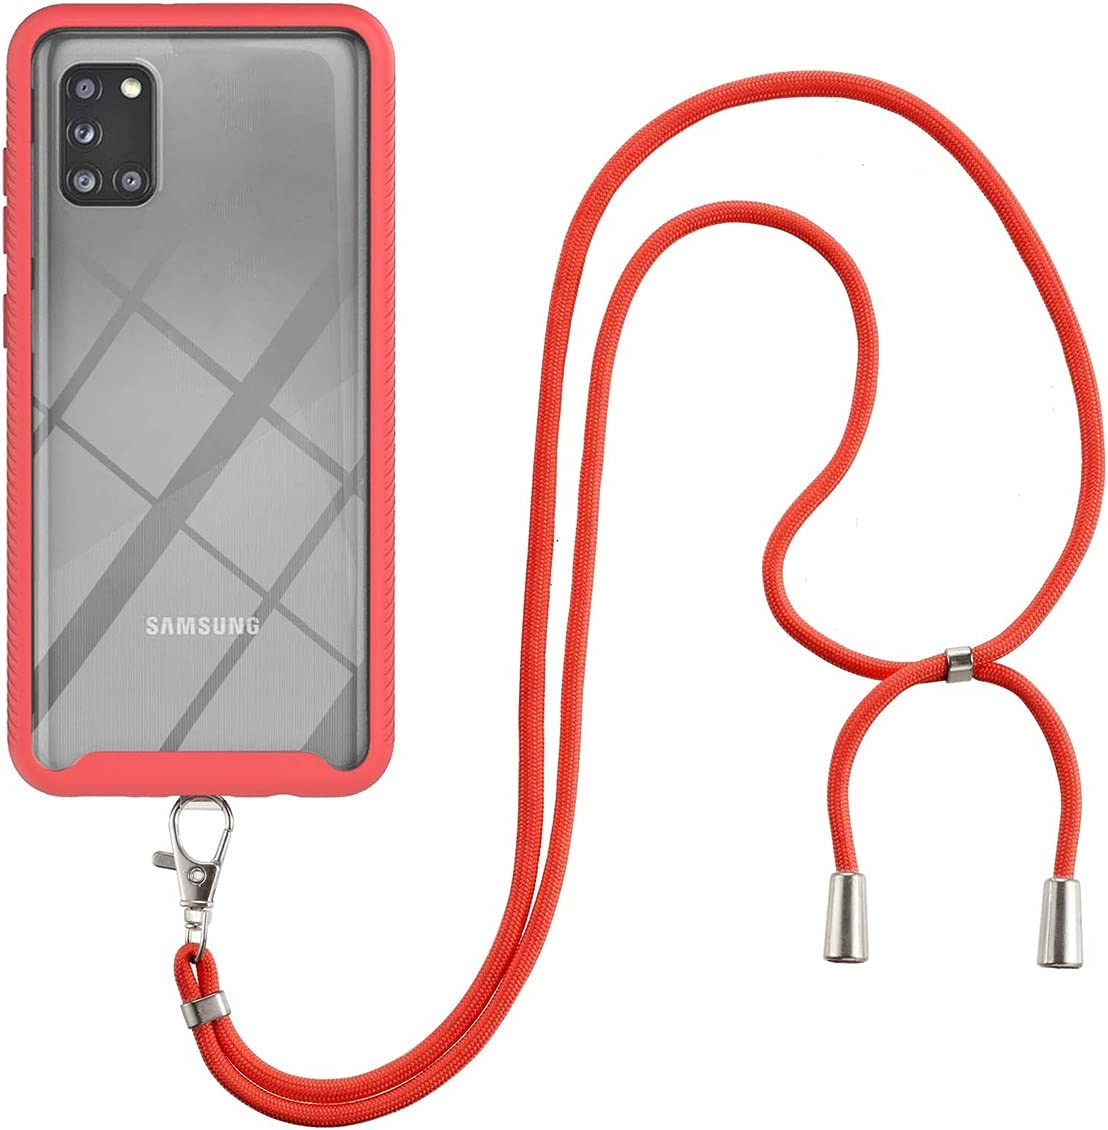 Galaxy A31 Case, Gift_Source Slim Shockproof Crossbody Case 2 in 1 Soft Silicone Bumper and Clear Hard PC Back Cover Shell with Adjustable Lanyard Neck Strap for Samsung Galaxy A31 (6.4